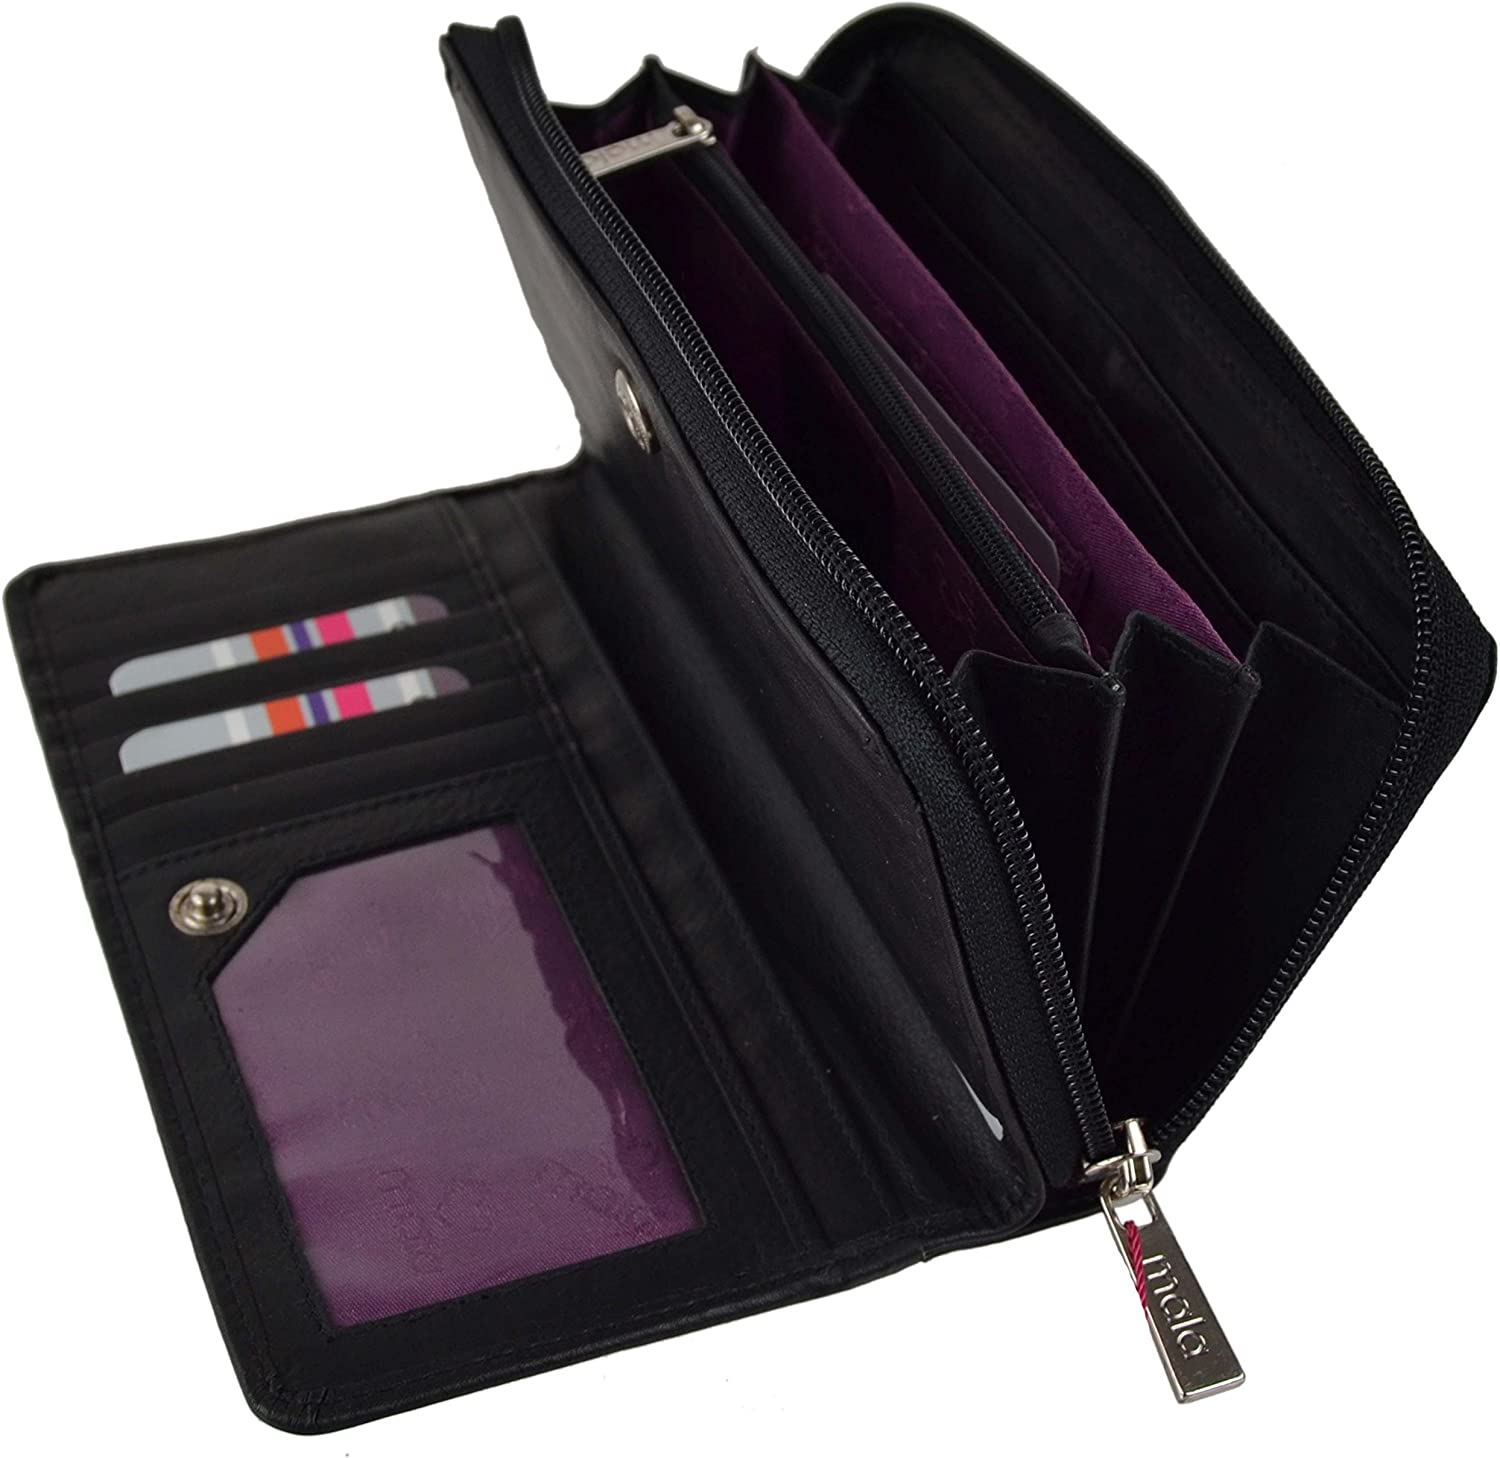 Mala Challenge the lowest price of Japan ☆ Leather Women's Top Long Protection Rfid Soft Purse Boston Mall